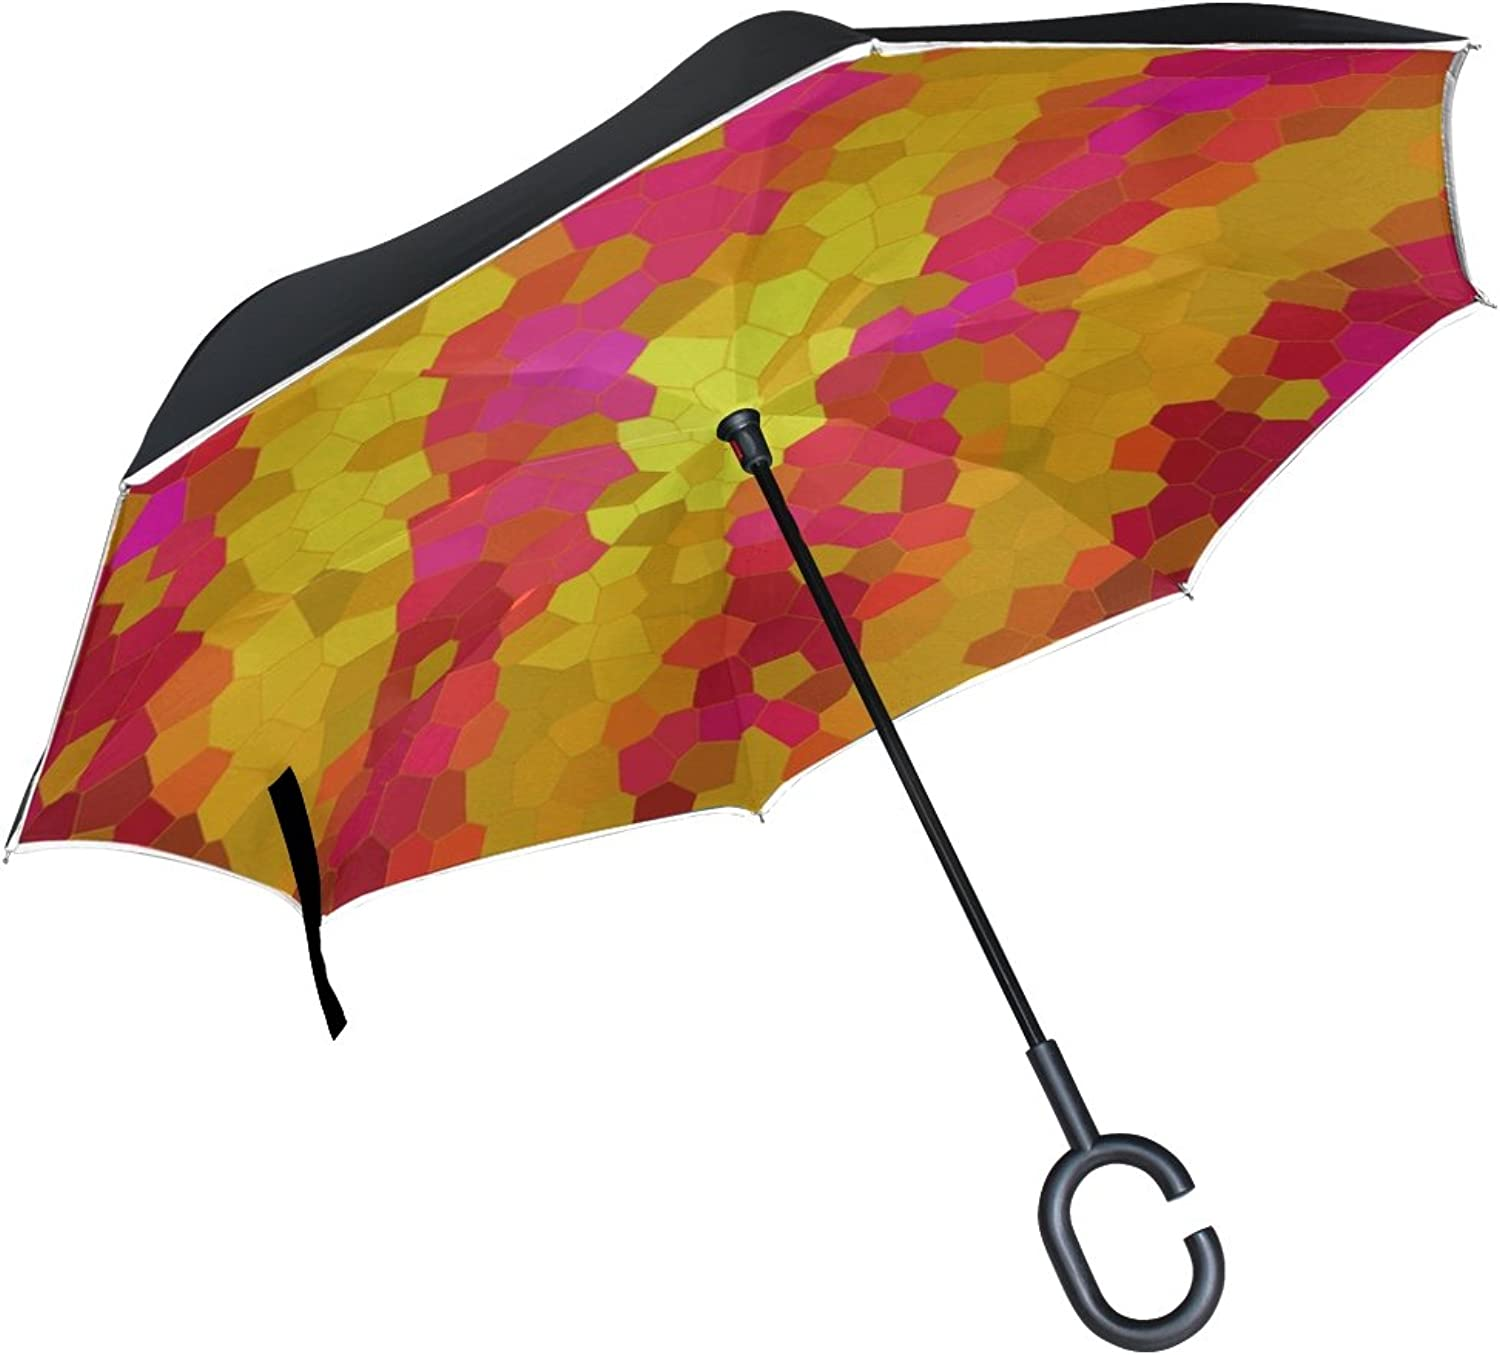 Double Layer Ingreened Abstract Backgroud Pattern colorful Design Texture Umbrellas Reverse Folding Umbrella Windproof Uv Predection Big Straight Umbrella for Car Rain Outdoor with CShaped Handle